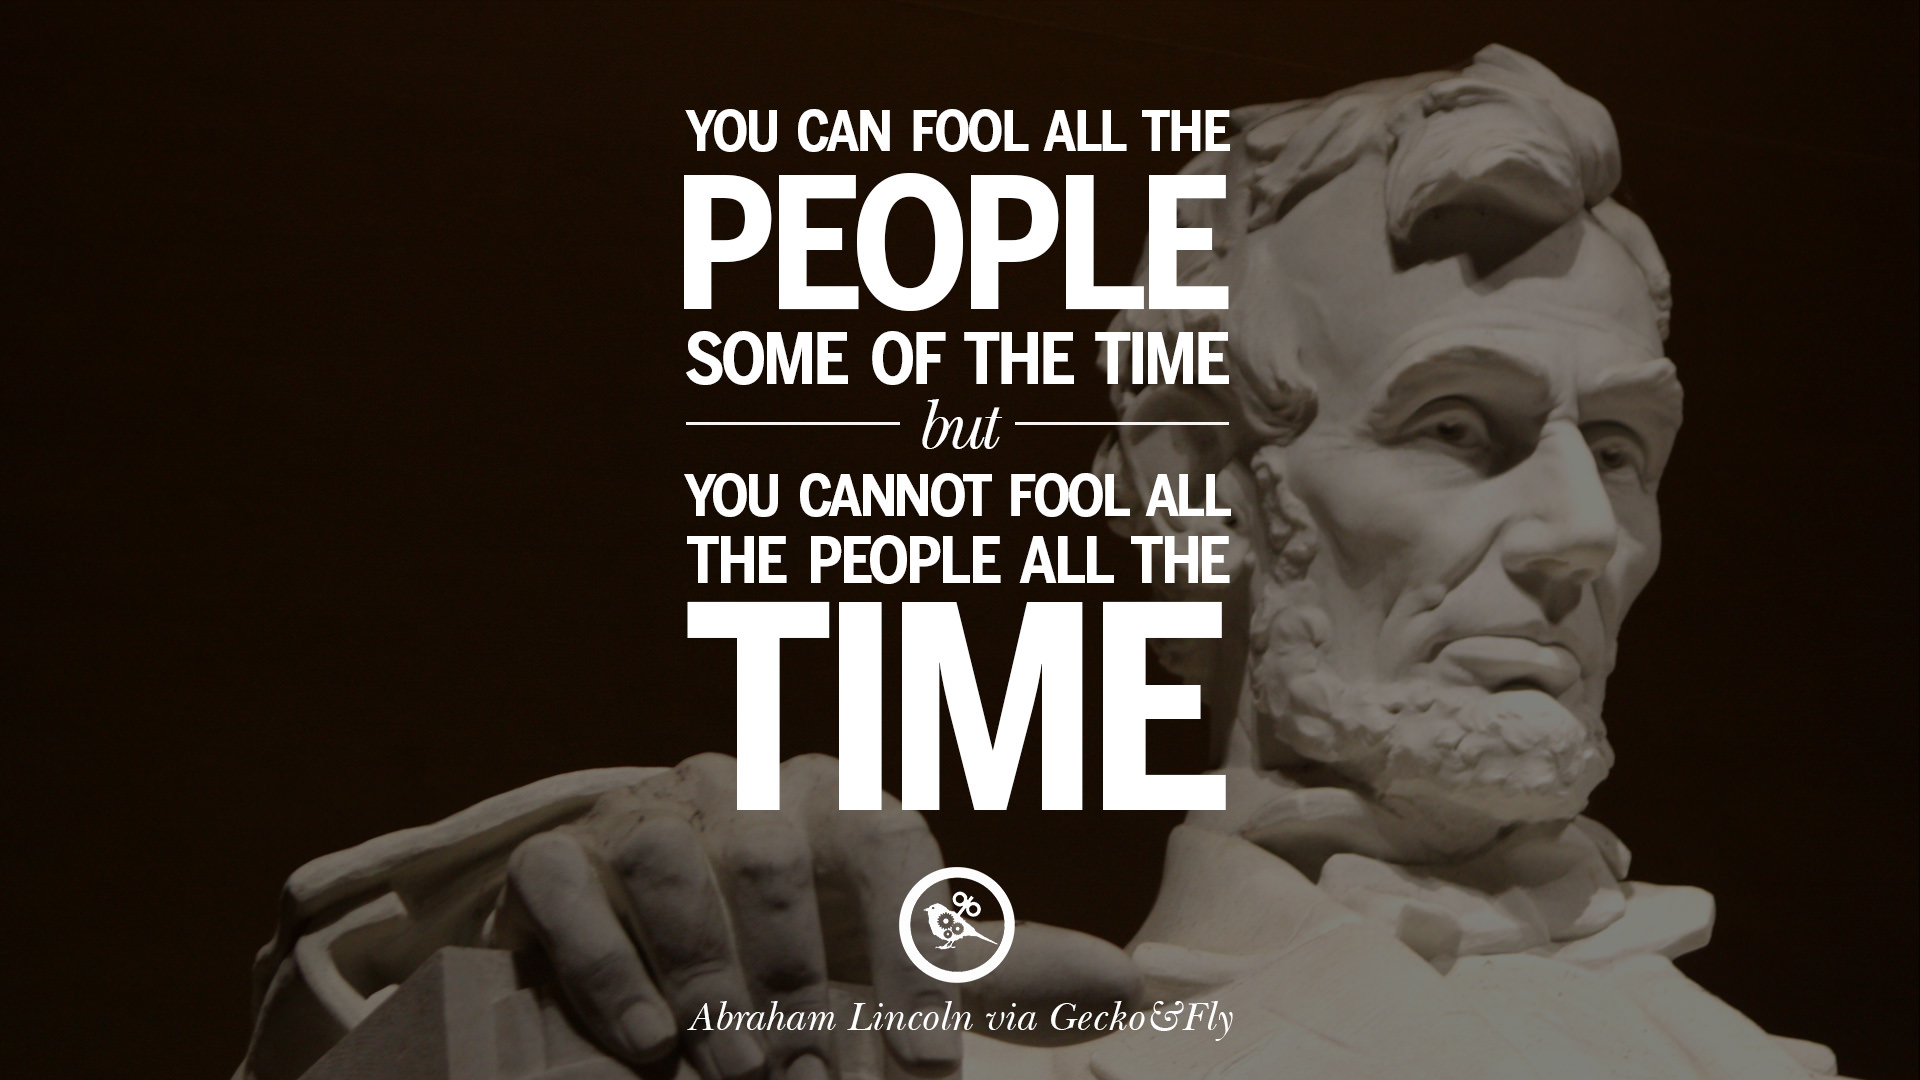 Abraham lincoln quote fool - You Can Fool All The People Some Of The Time But You Cannot Fool All The People All The Time Abraham Lincoln